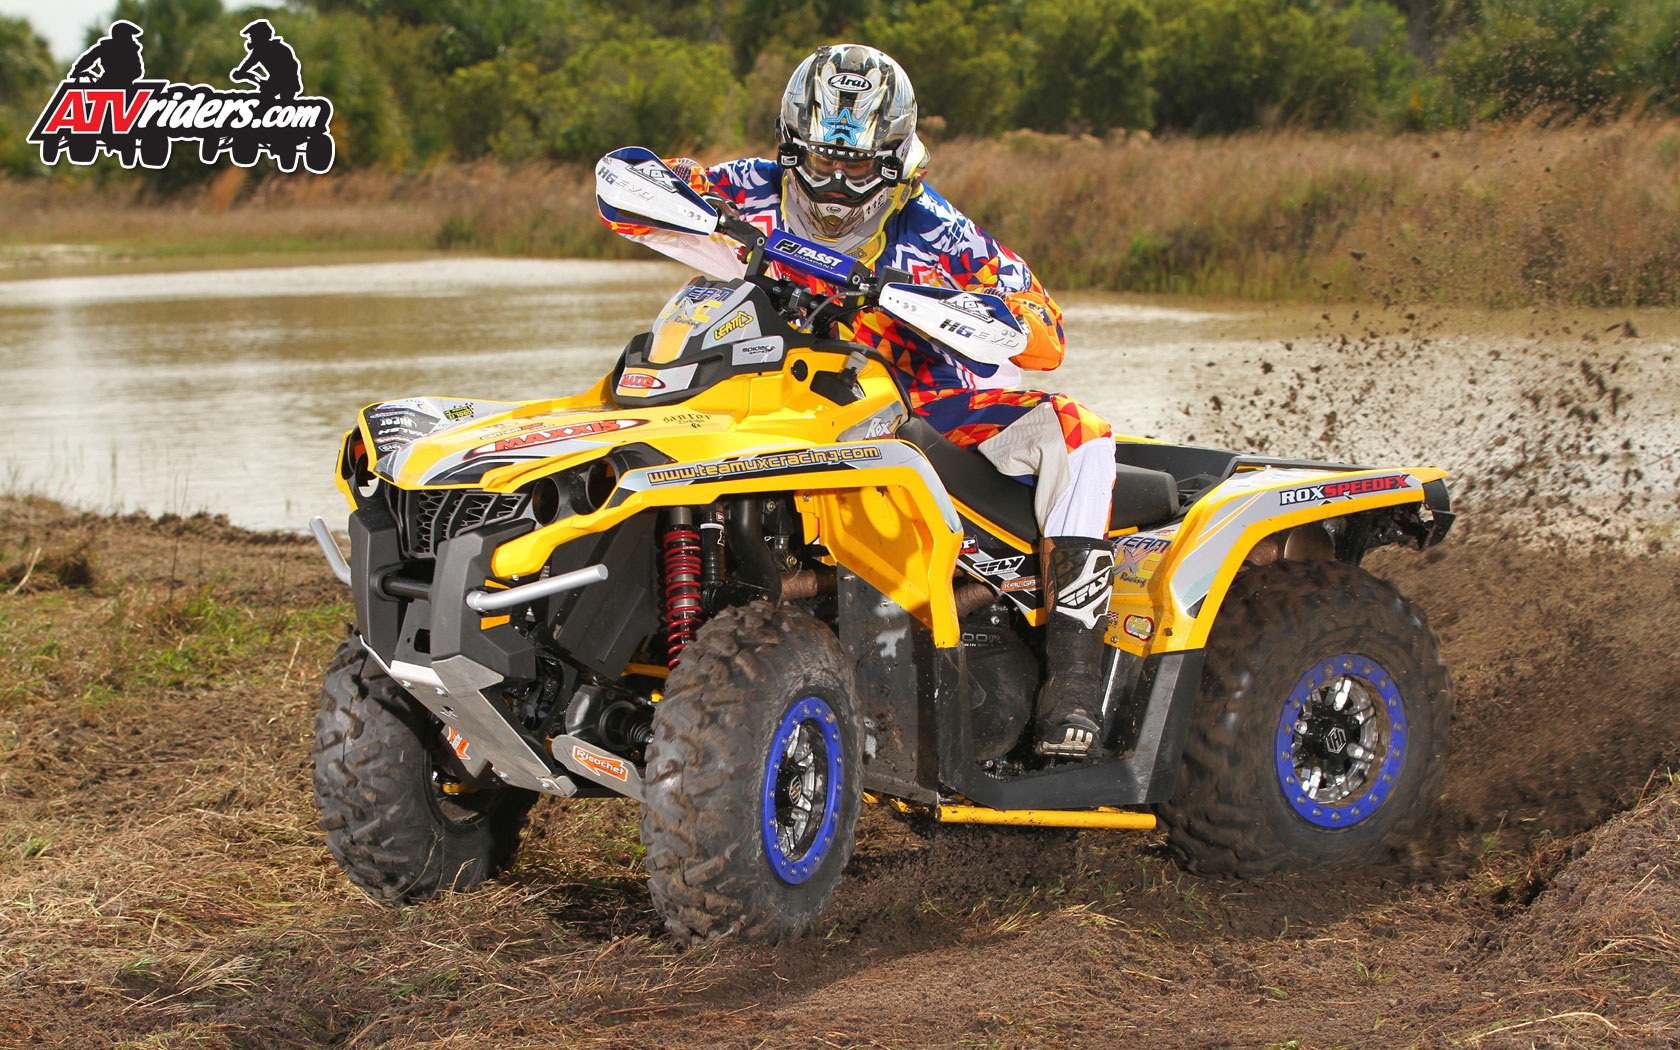 Swift   GNCC Utility ATV Racer   ATVriderscom Wednesday Wallpapers 1680x1050